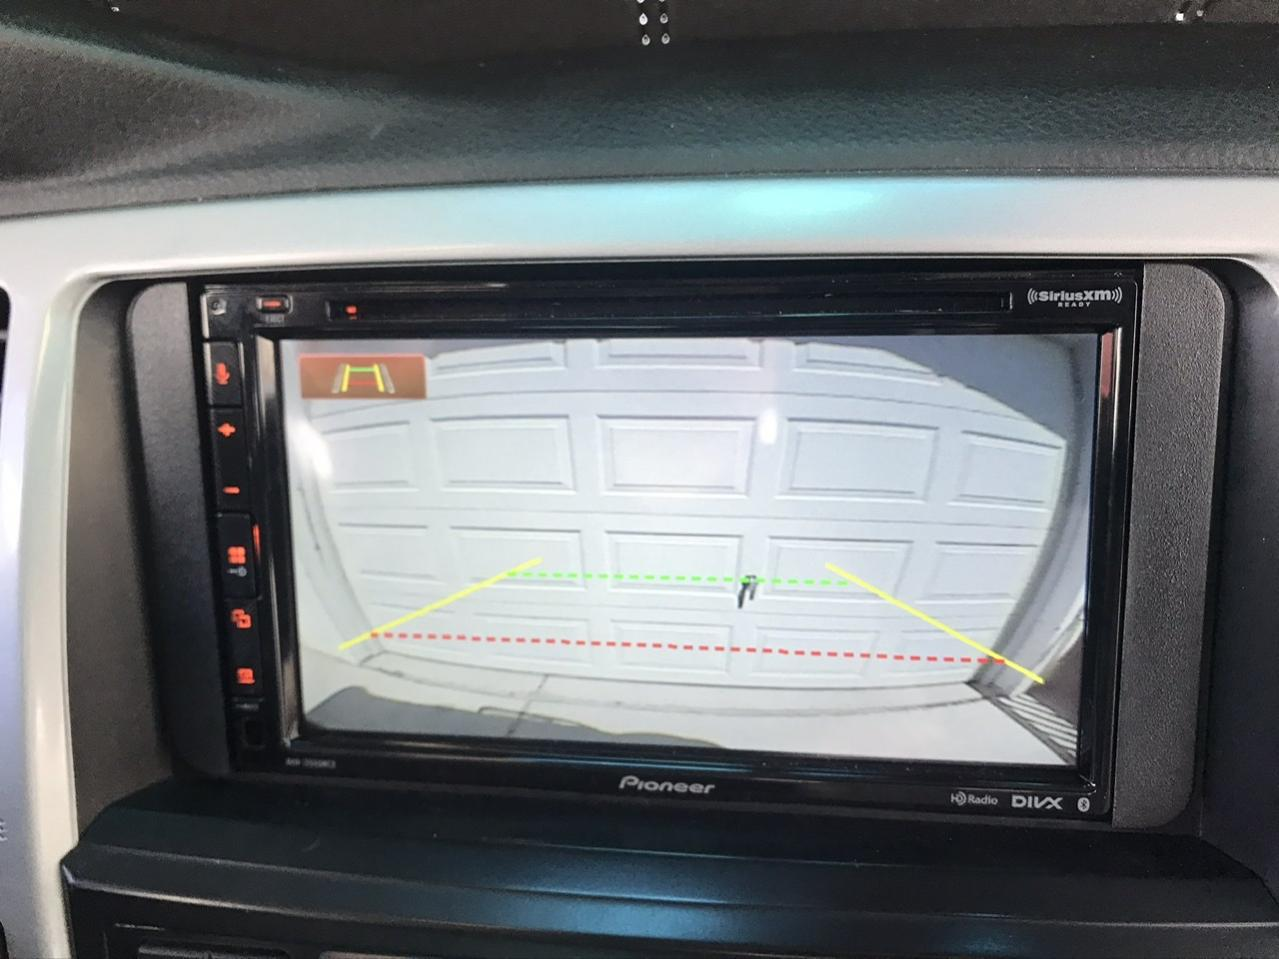 Maestro and idatalink with new head unit install-cf569918-5270-4676-ab52-e7935e7687ab-jpg